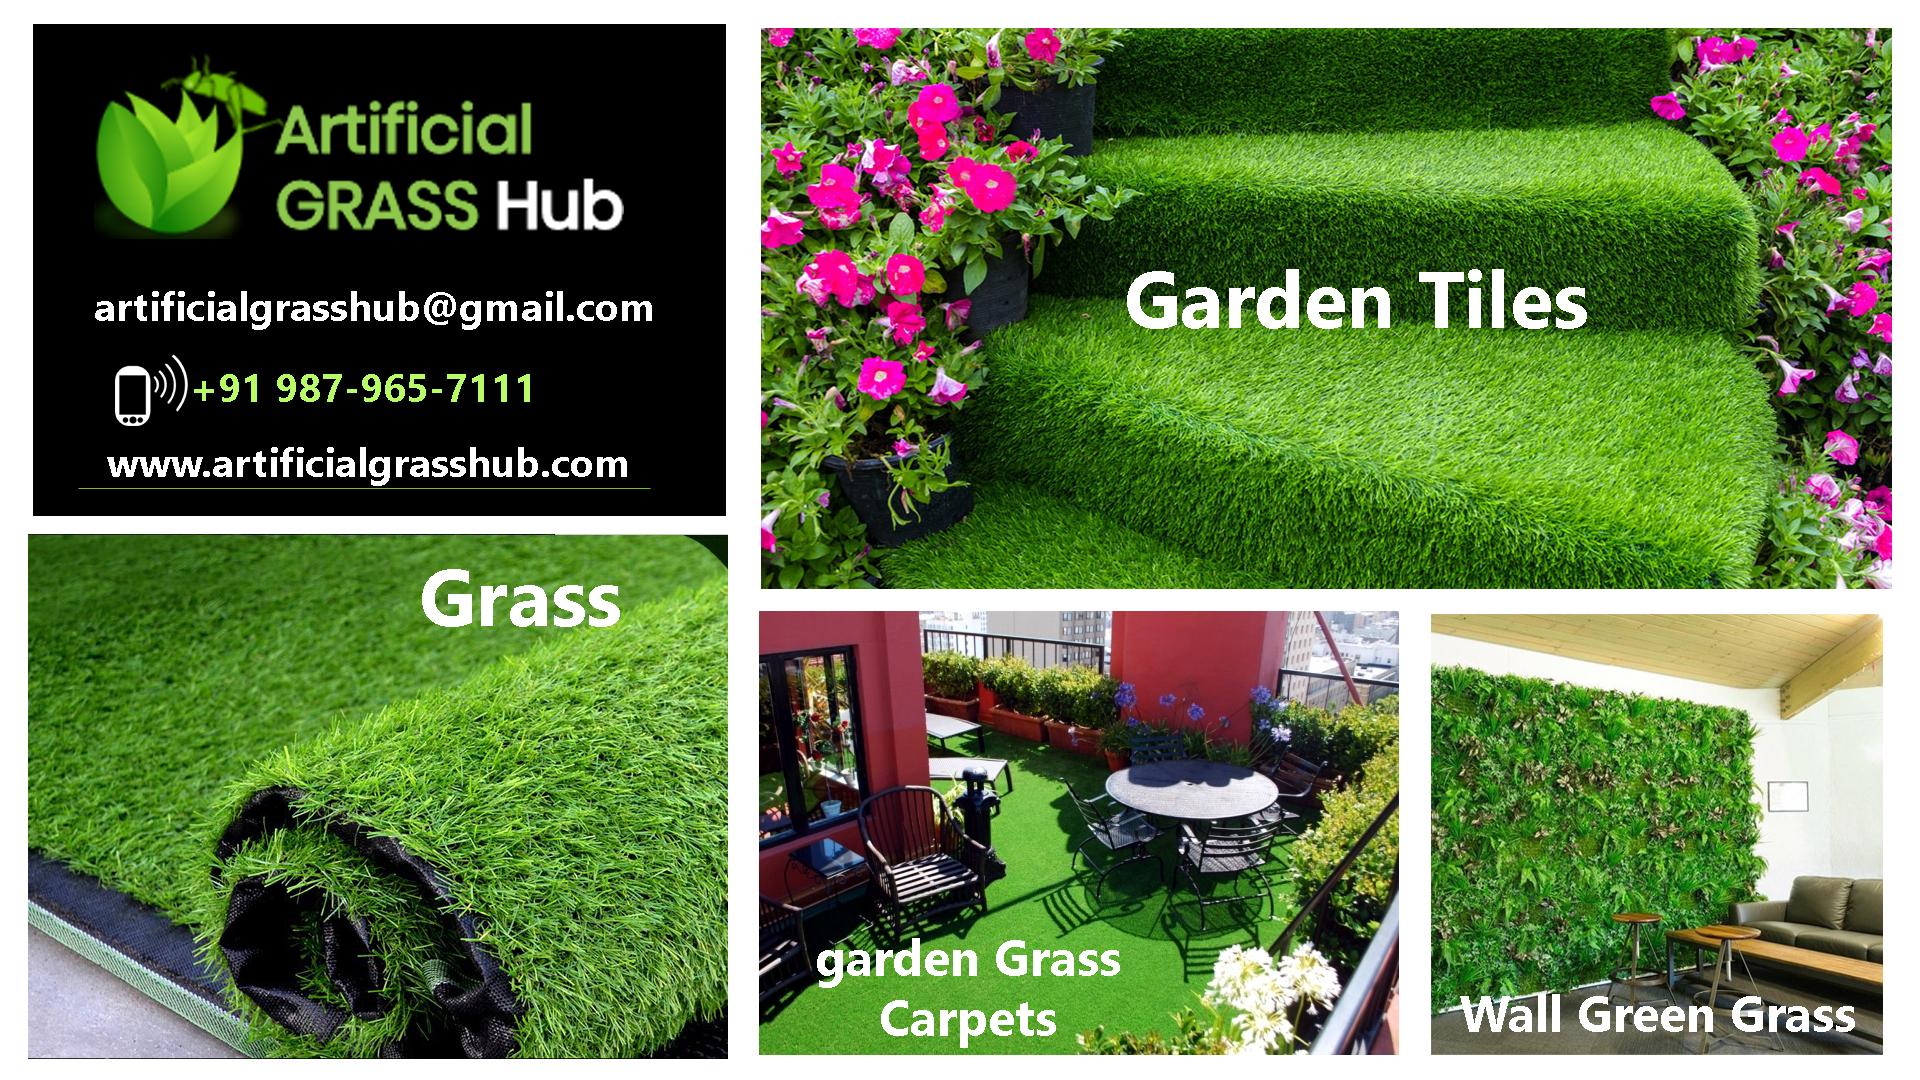 Image for Artificial grass Hub manufacturer | since 1976 in India | artificialgr